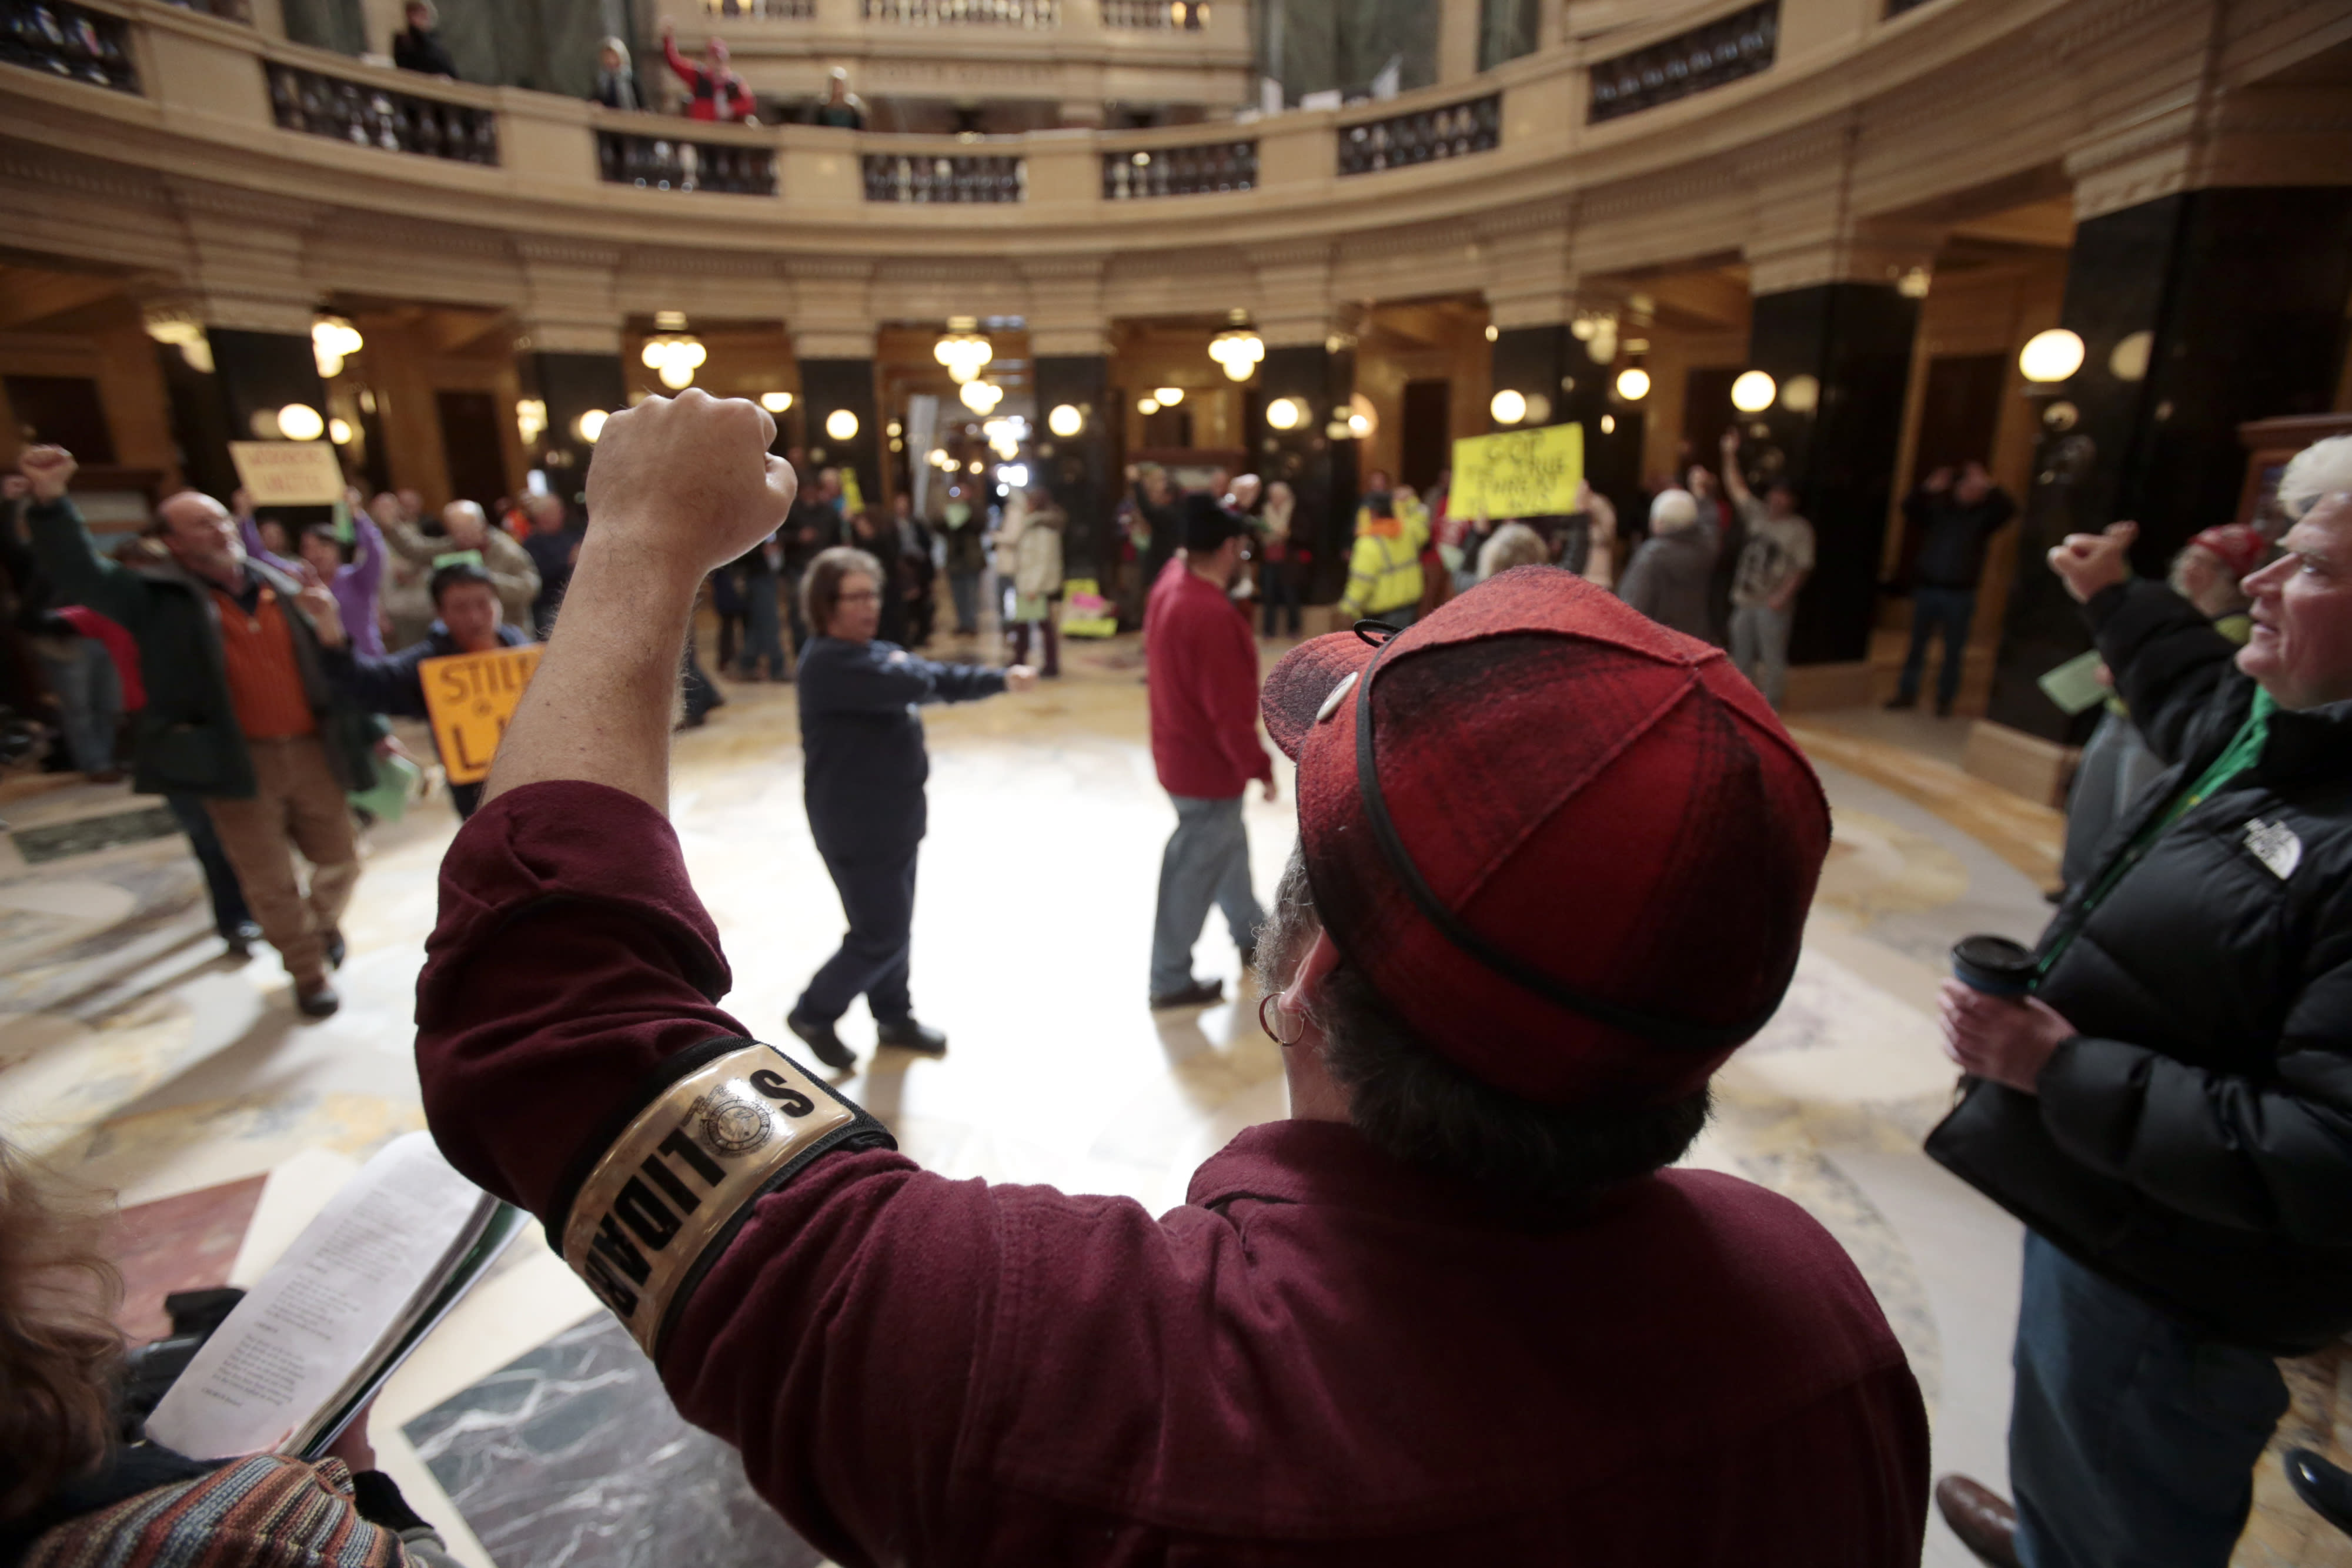 Union members speak out against right-to-work in Wisconsin